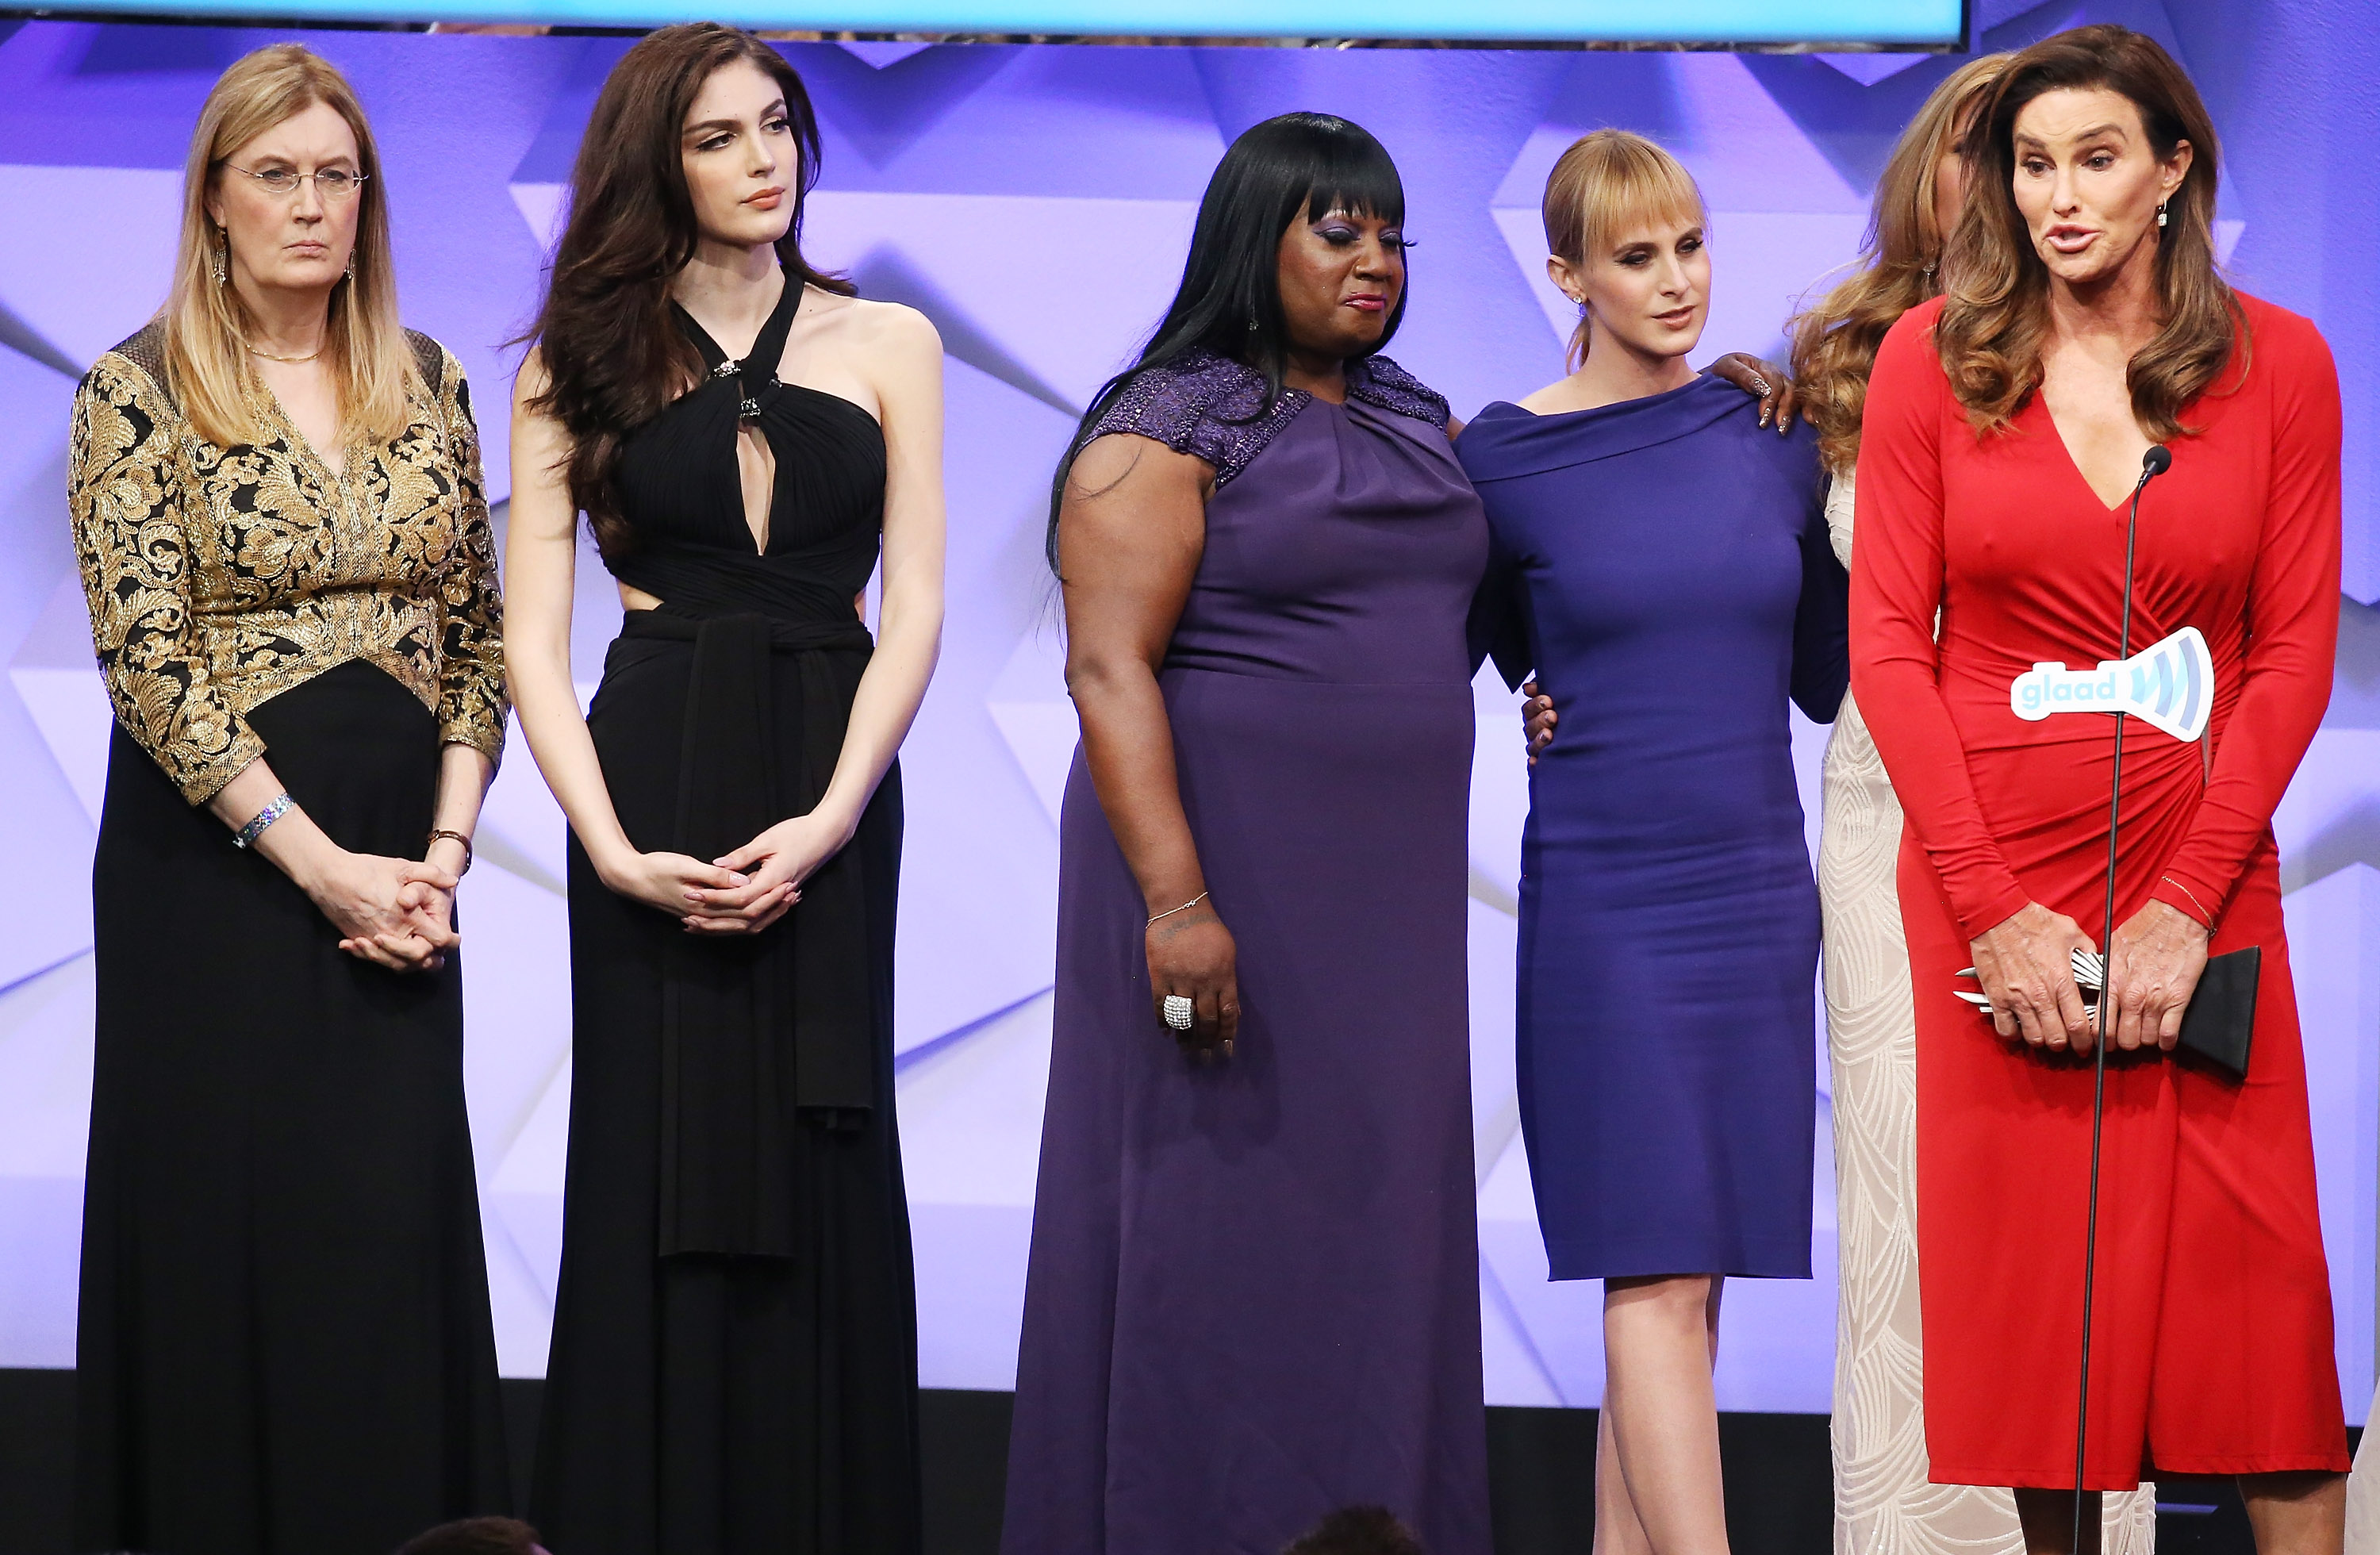 Caitlyn Jenner and the cast of I Am Cait speak onstage during the 27th Annual GLAAD Media Awards on April 2, 2016 in Beverly Hills, California.